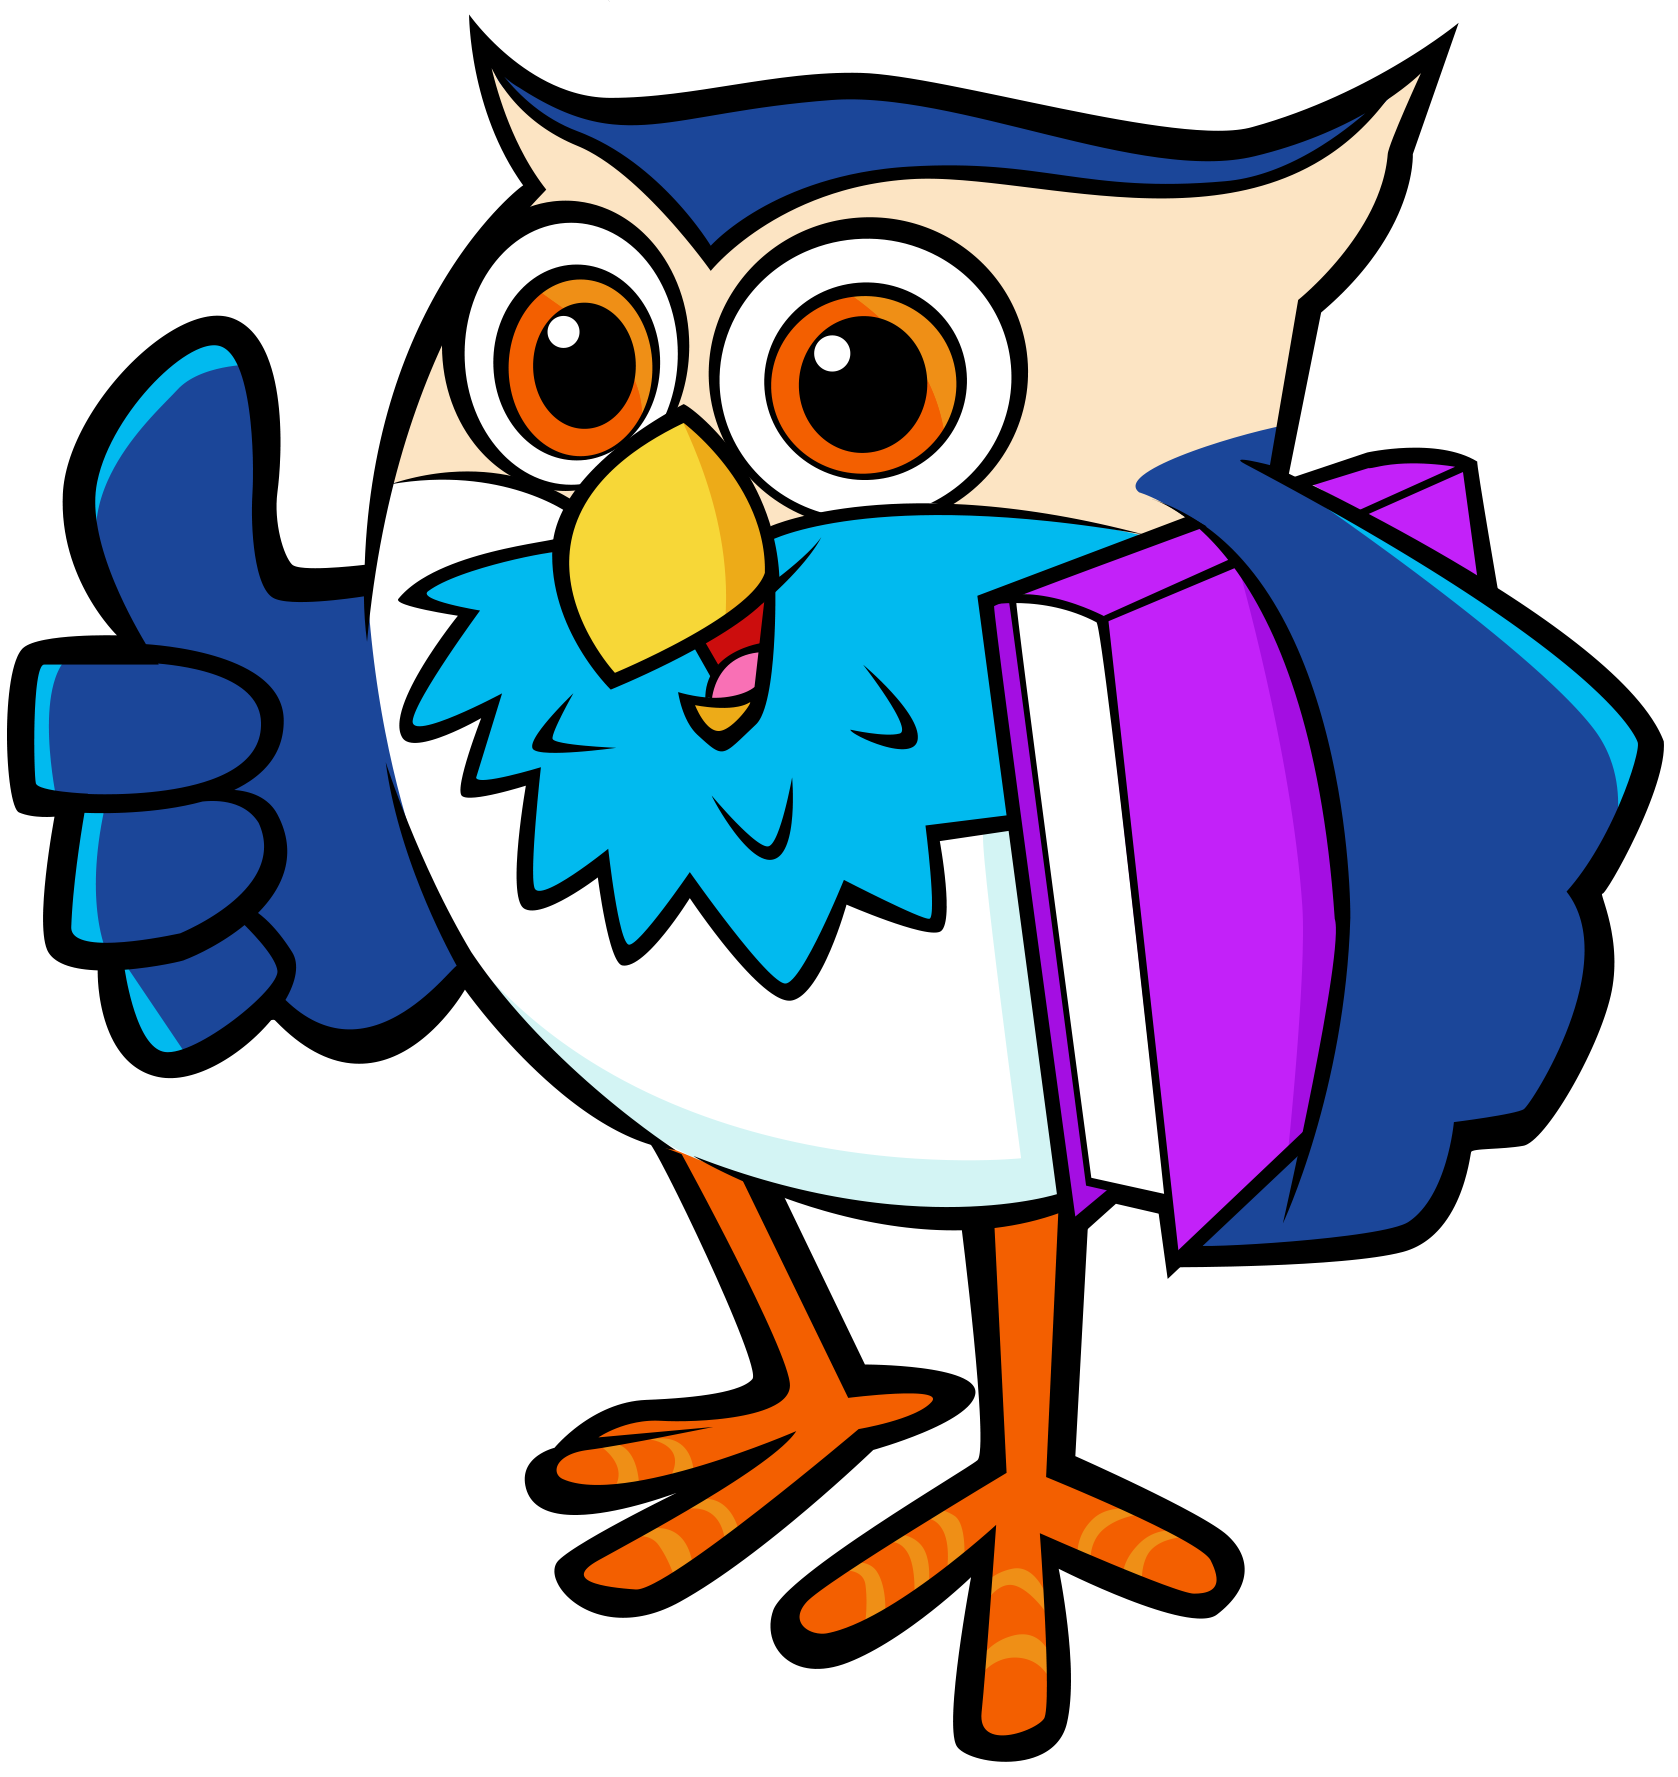 Research papers for dummies. Ears clipart owl